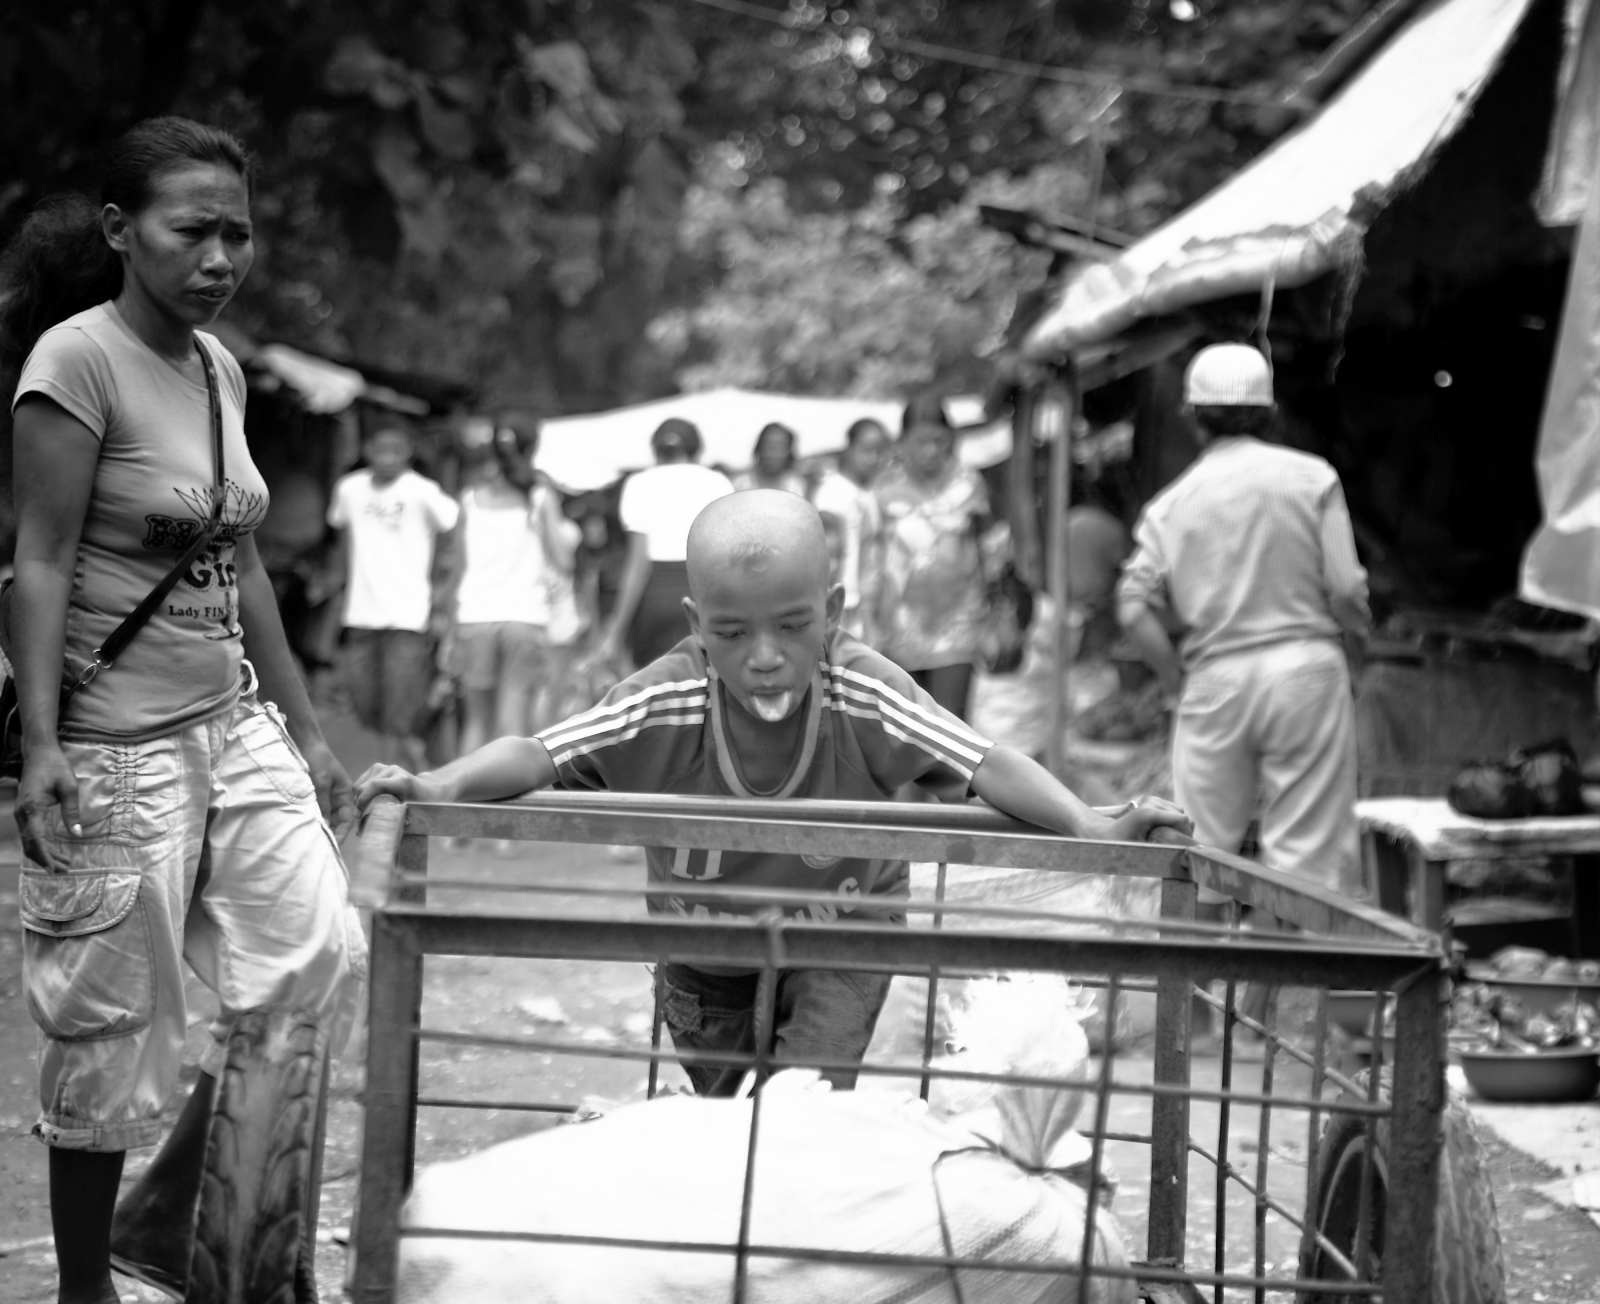 A young boy pushes a heavy metal cart at a East...